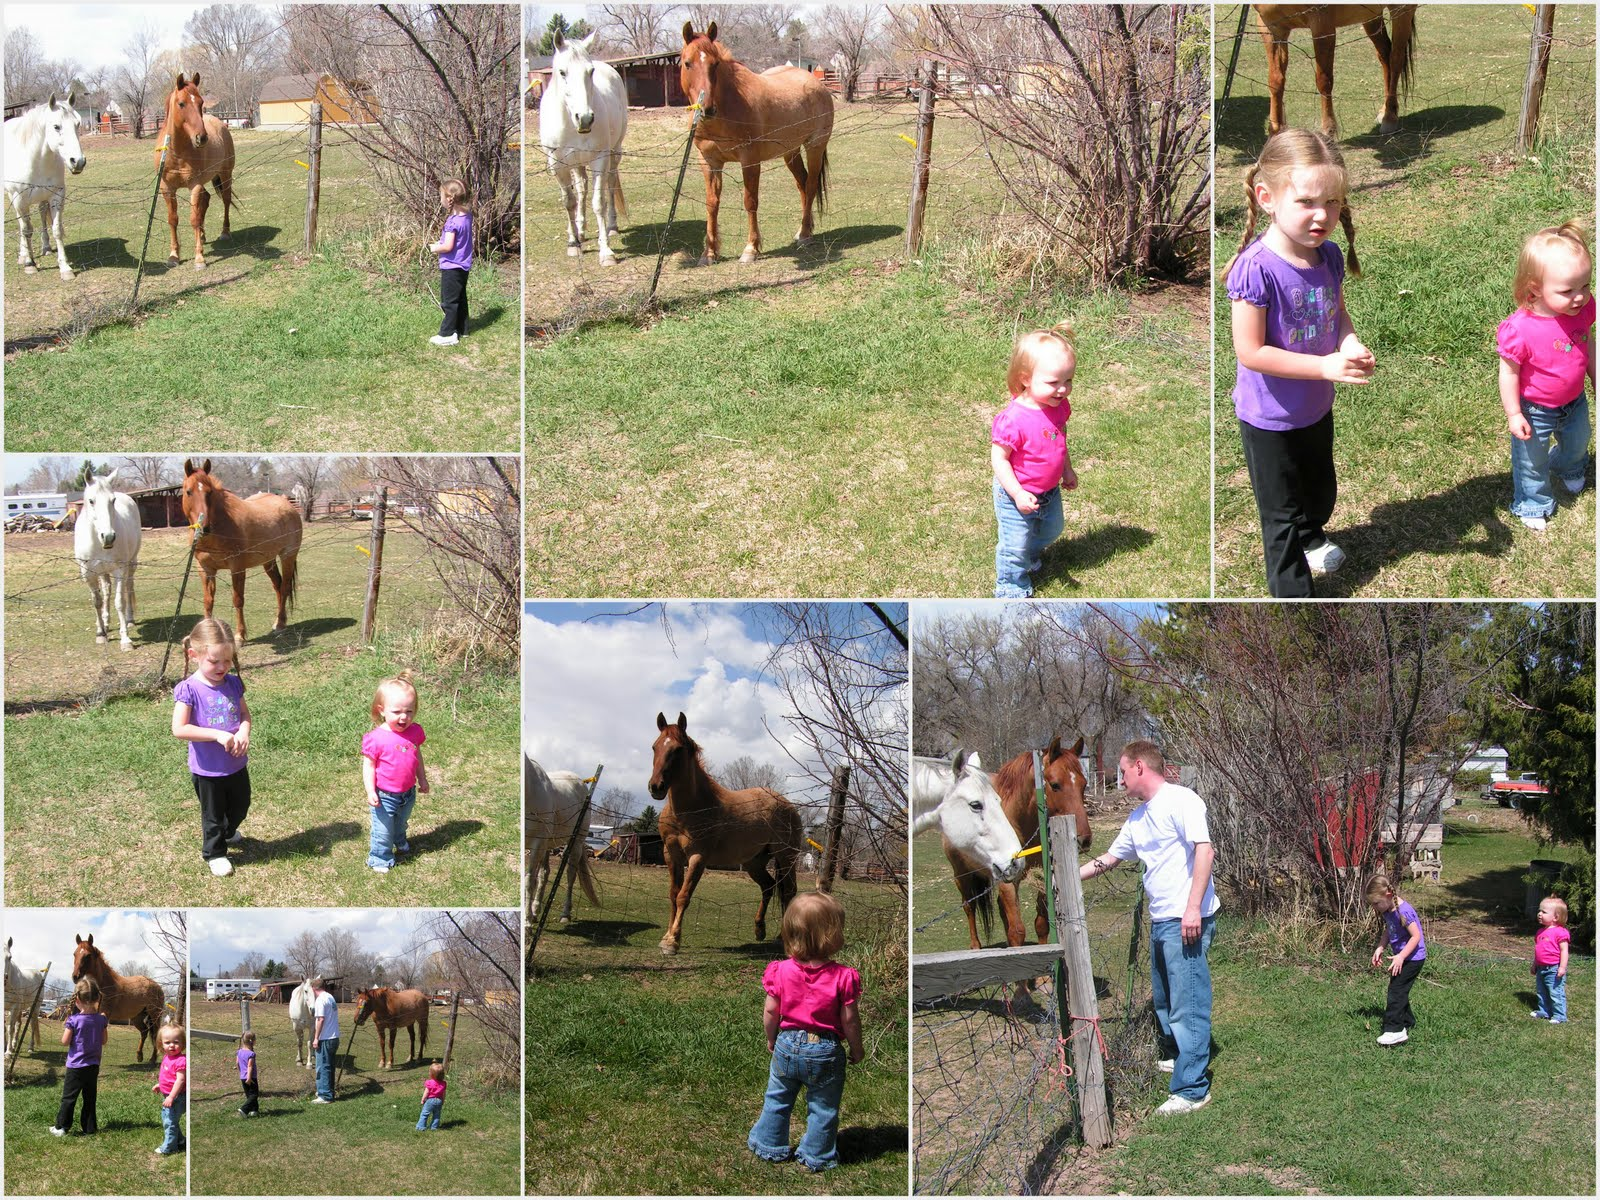 Most Inspiring   Wallpaper Horse Collage - 4-17-101  Perfect Image Reference_182071.jpg